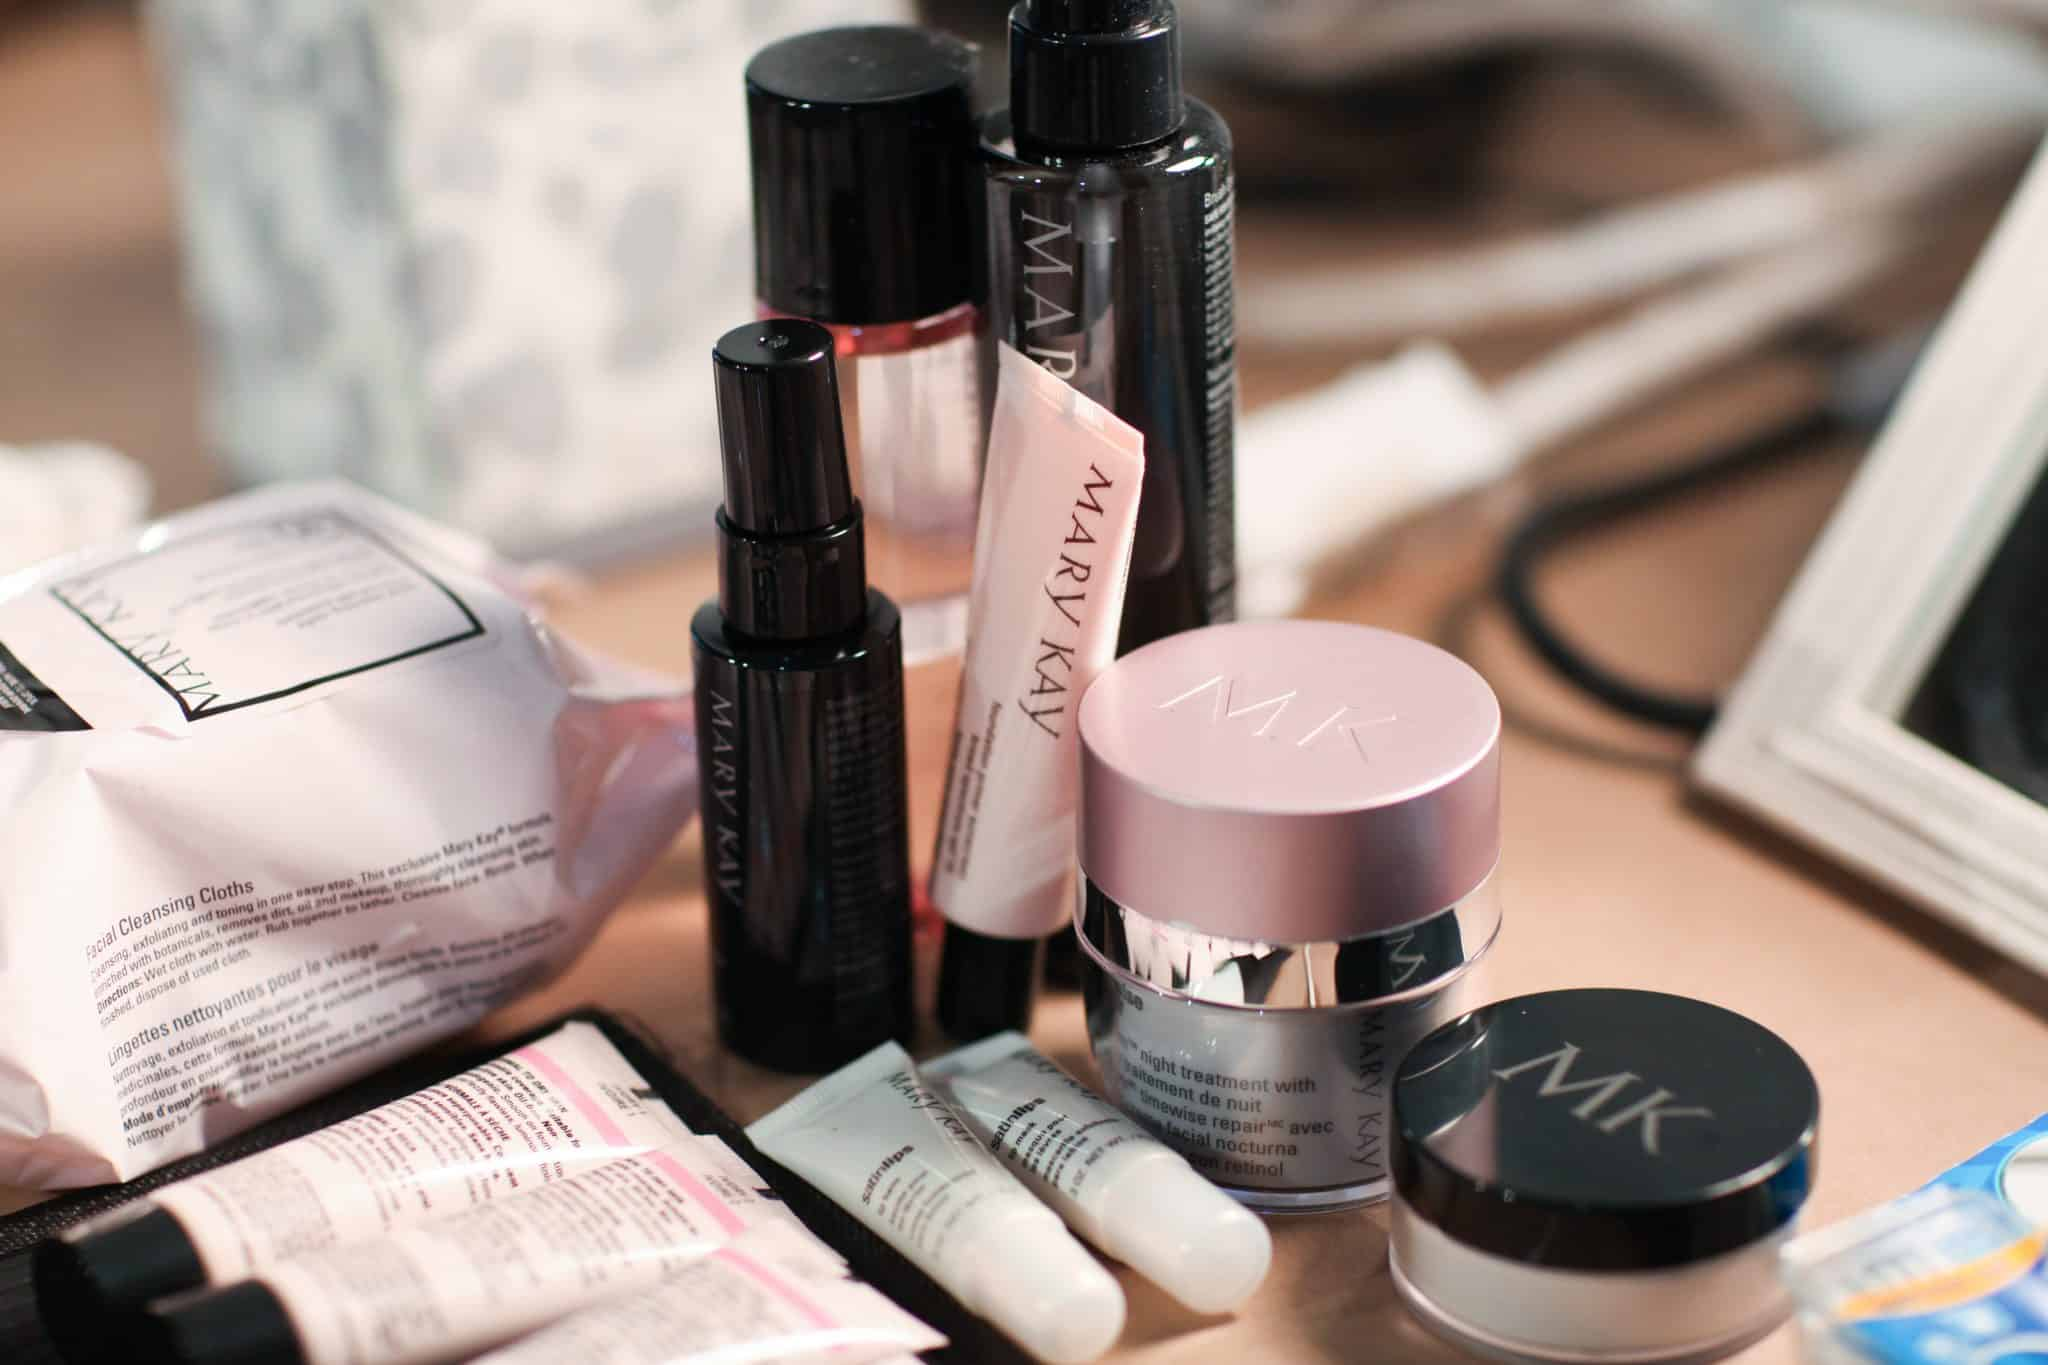 Win a Mary Kay Prize Pack! #GhostsGoblins #THBhop